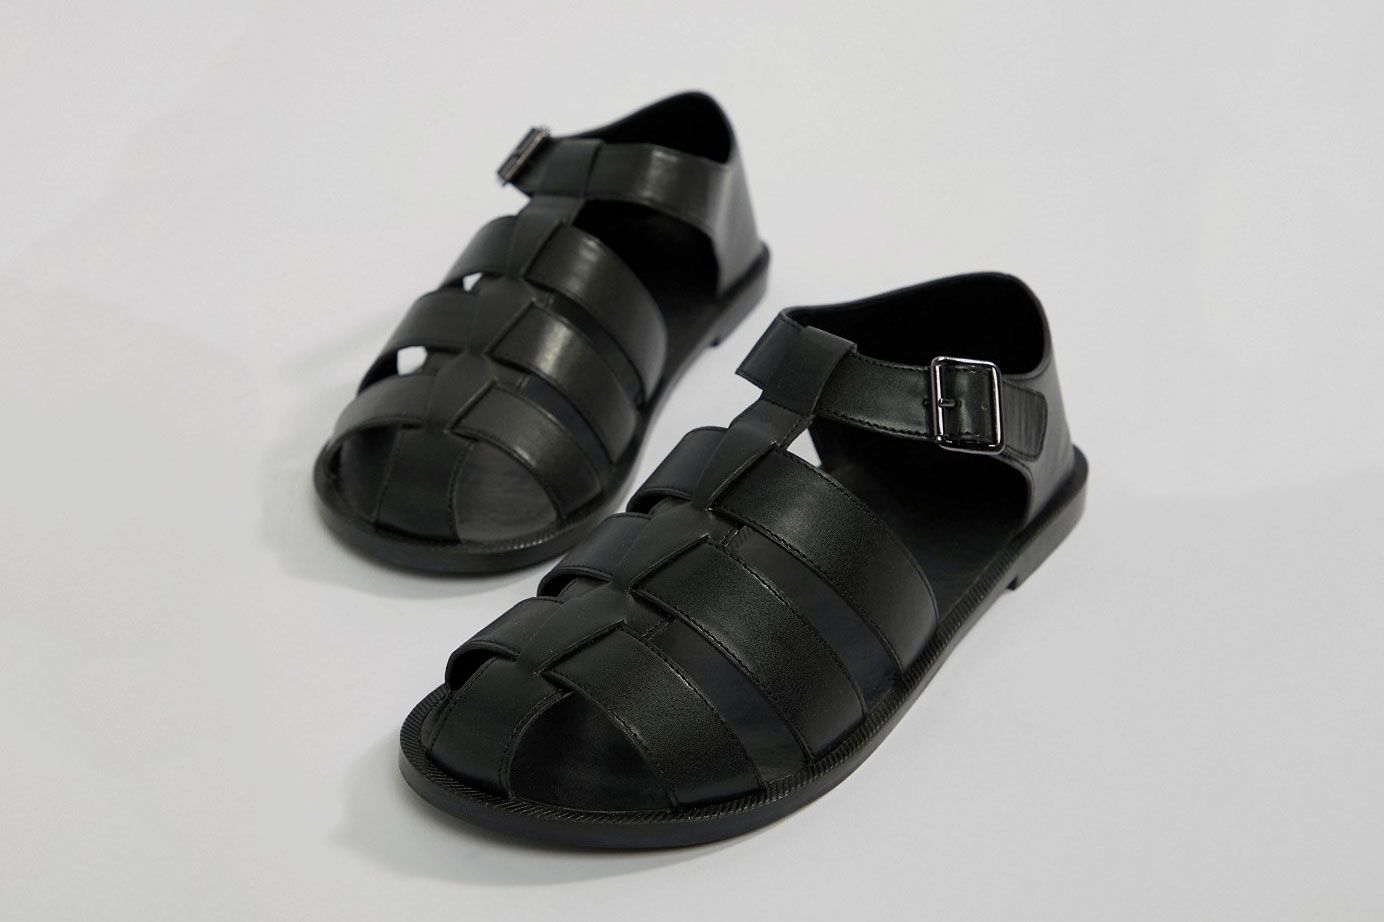 71bd33872c319 29 Stylish Men s Sandals to Wear This Summer